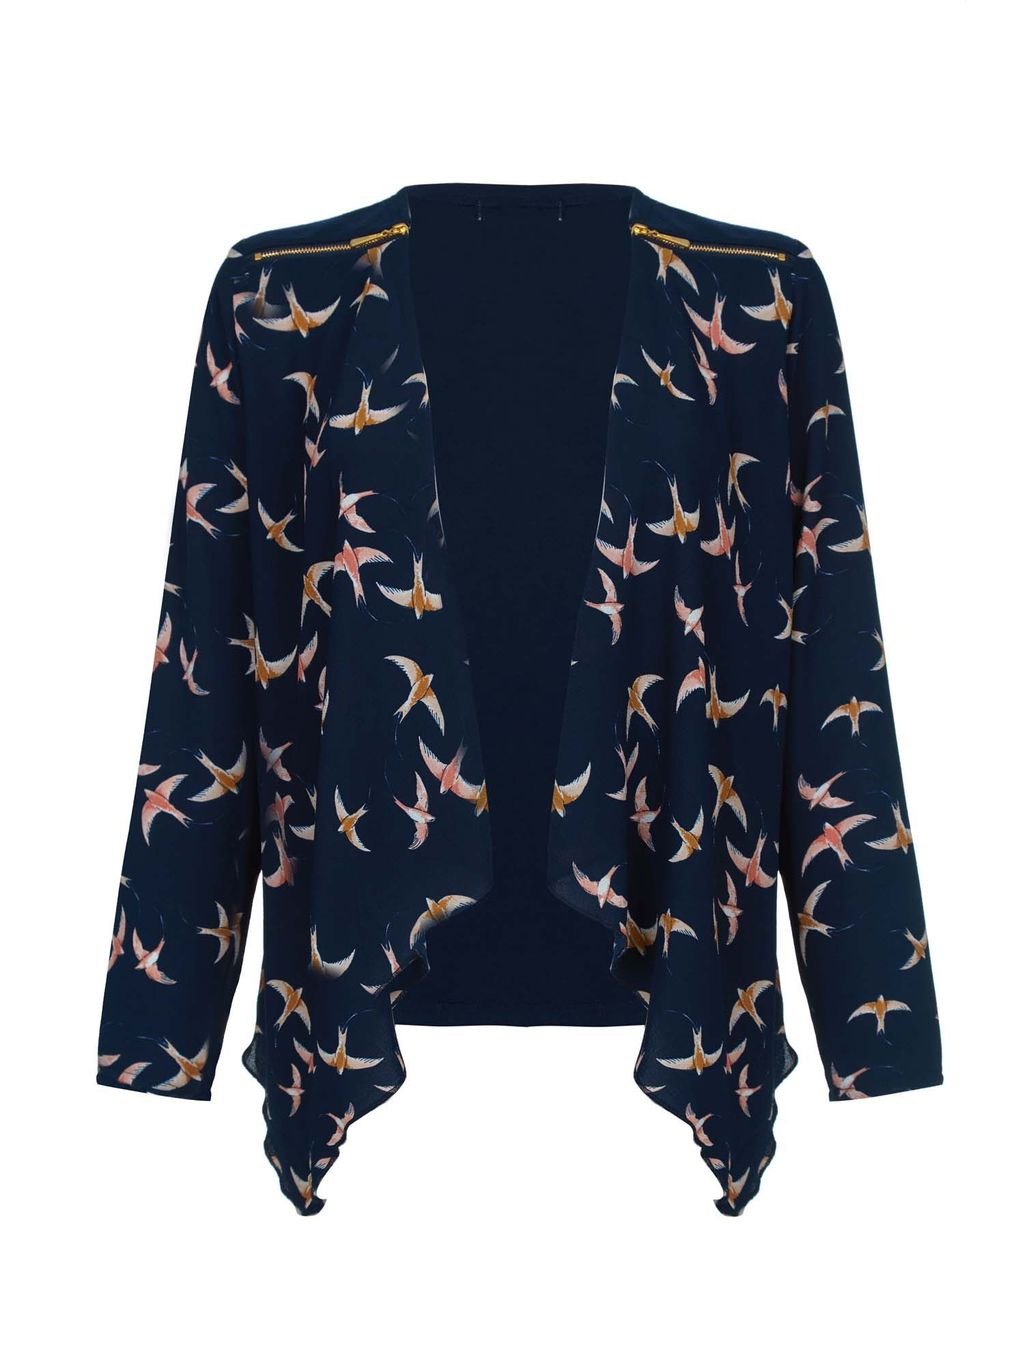 Swallow Bird Print Waterfall Jacket, Navy - style: single breasted blazer; collar: shawl/waterfall; predominant colour: navy; secondary colour: nude; occasions: casual, creative work; length: standard; fit: straight cut (boxy); fibres: polyester/polyamide - 100%; sleeve length: long sleeve; sleeve style: standard; collar break: low/open; pattern type: fabric; pattern size: standard; pattern: patterned/print; texture group: woven light midweight; season: s/s 2016; wardrobe: highlight